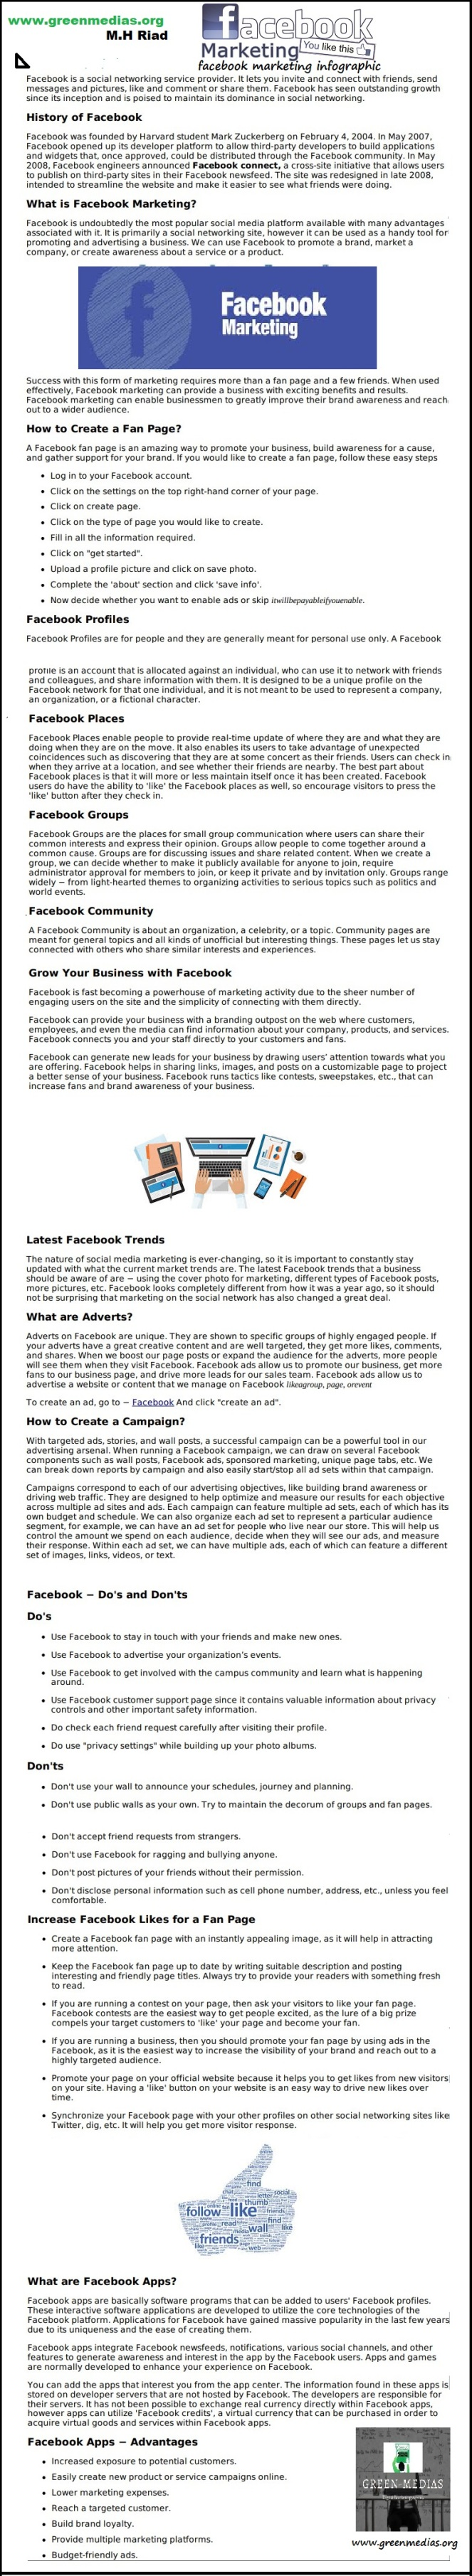 facebook marketing infographic